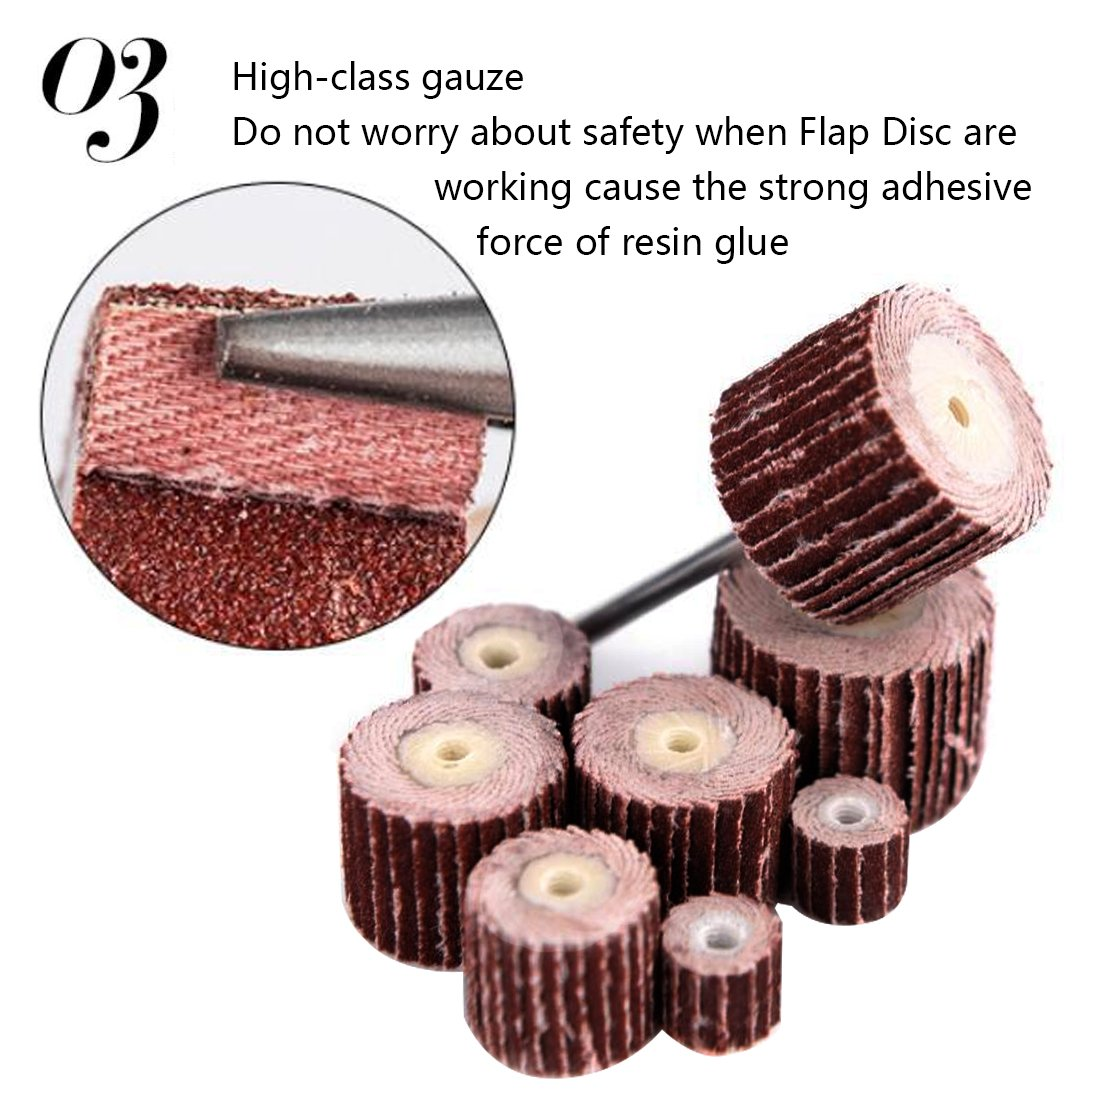 10pcs Flap Wheel Brushes Emery Cloth Abrasive Sandpaper Grinding Compatible for Woodworking Disc 20mm 320# 1pc Mandrel